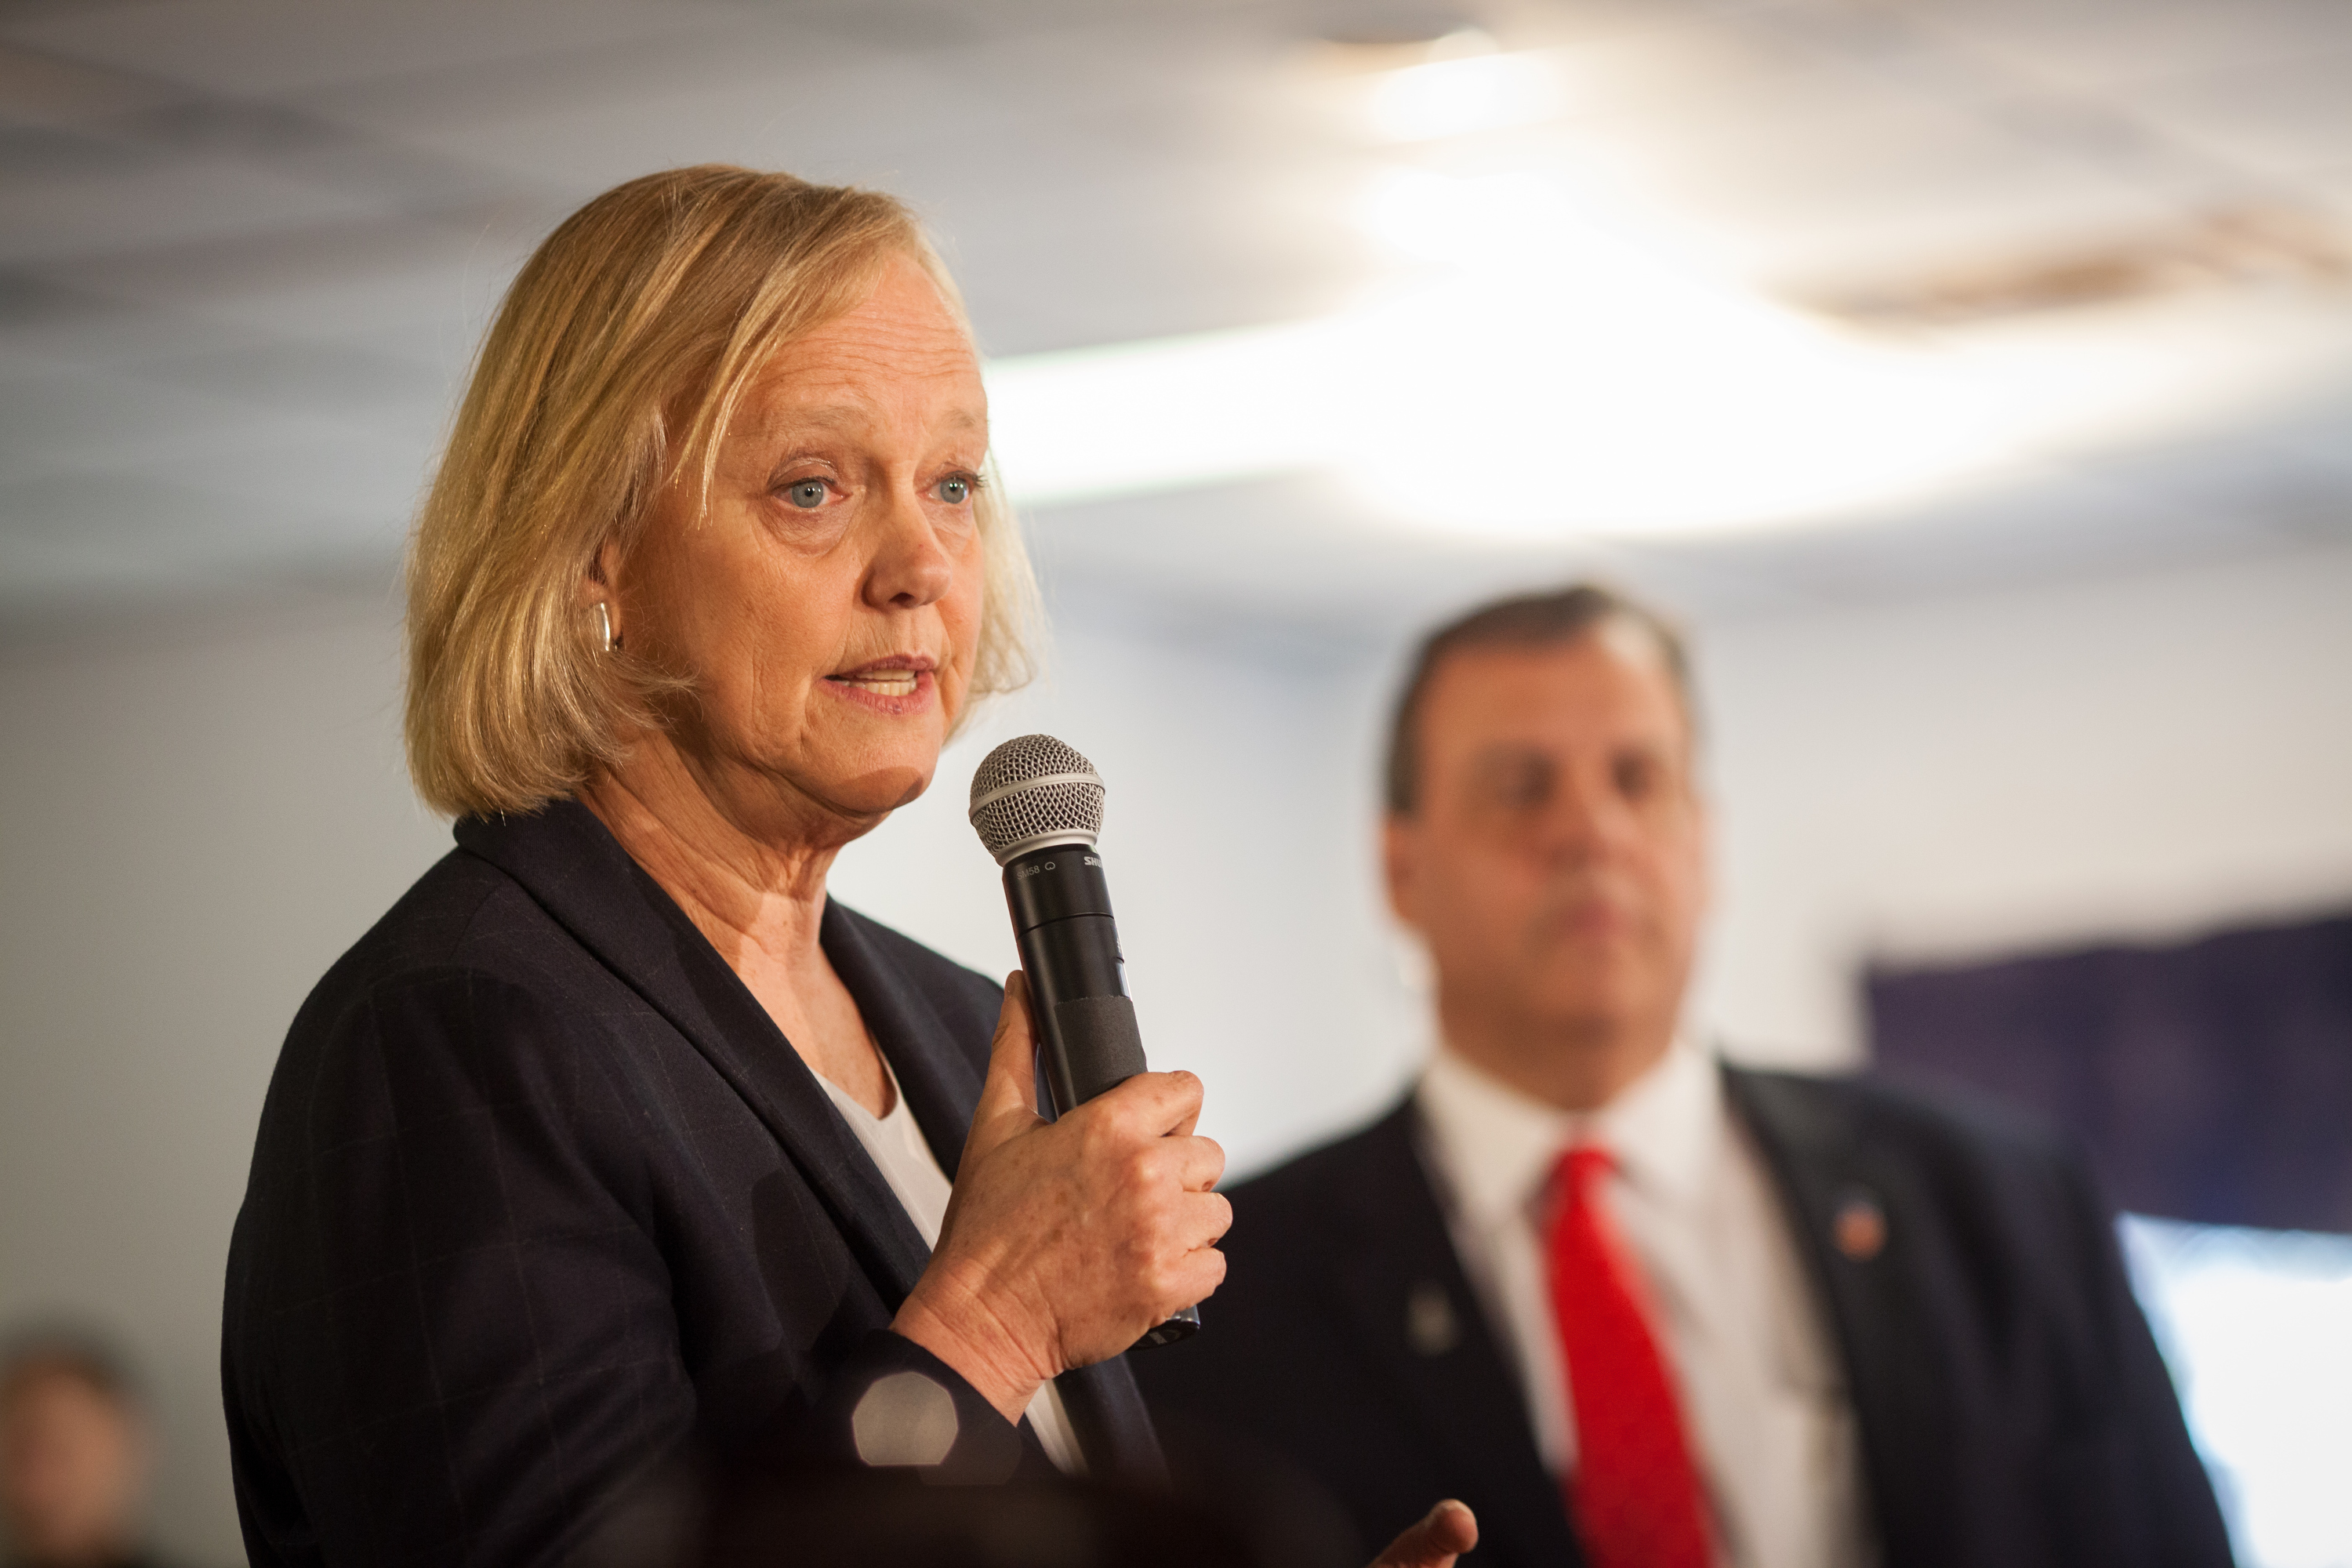 Meg Whitman Joins Chris Christie For Town Hall In New Hampshire